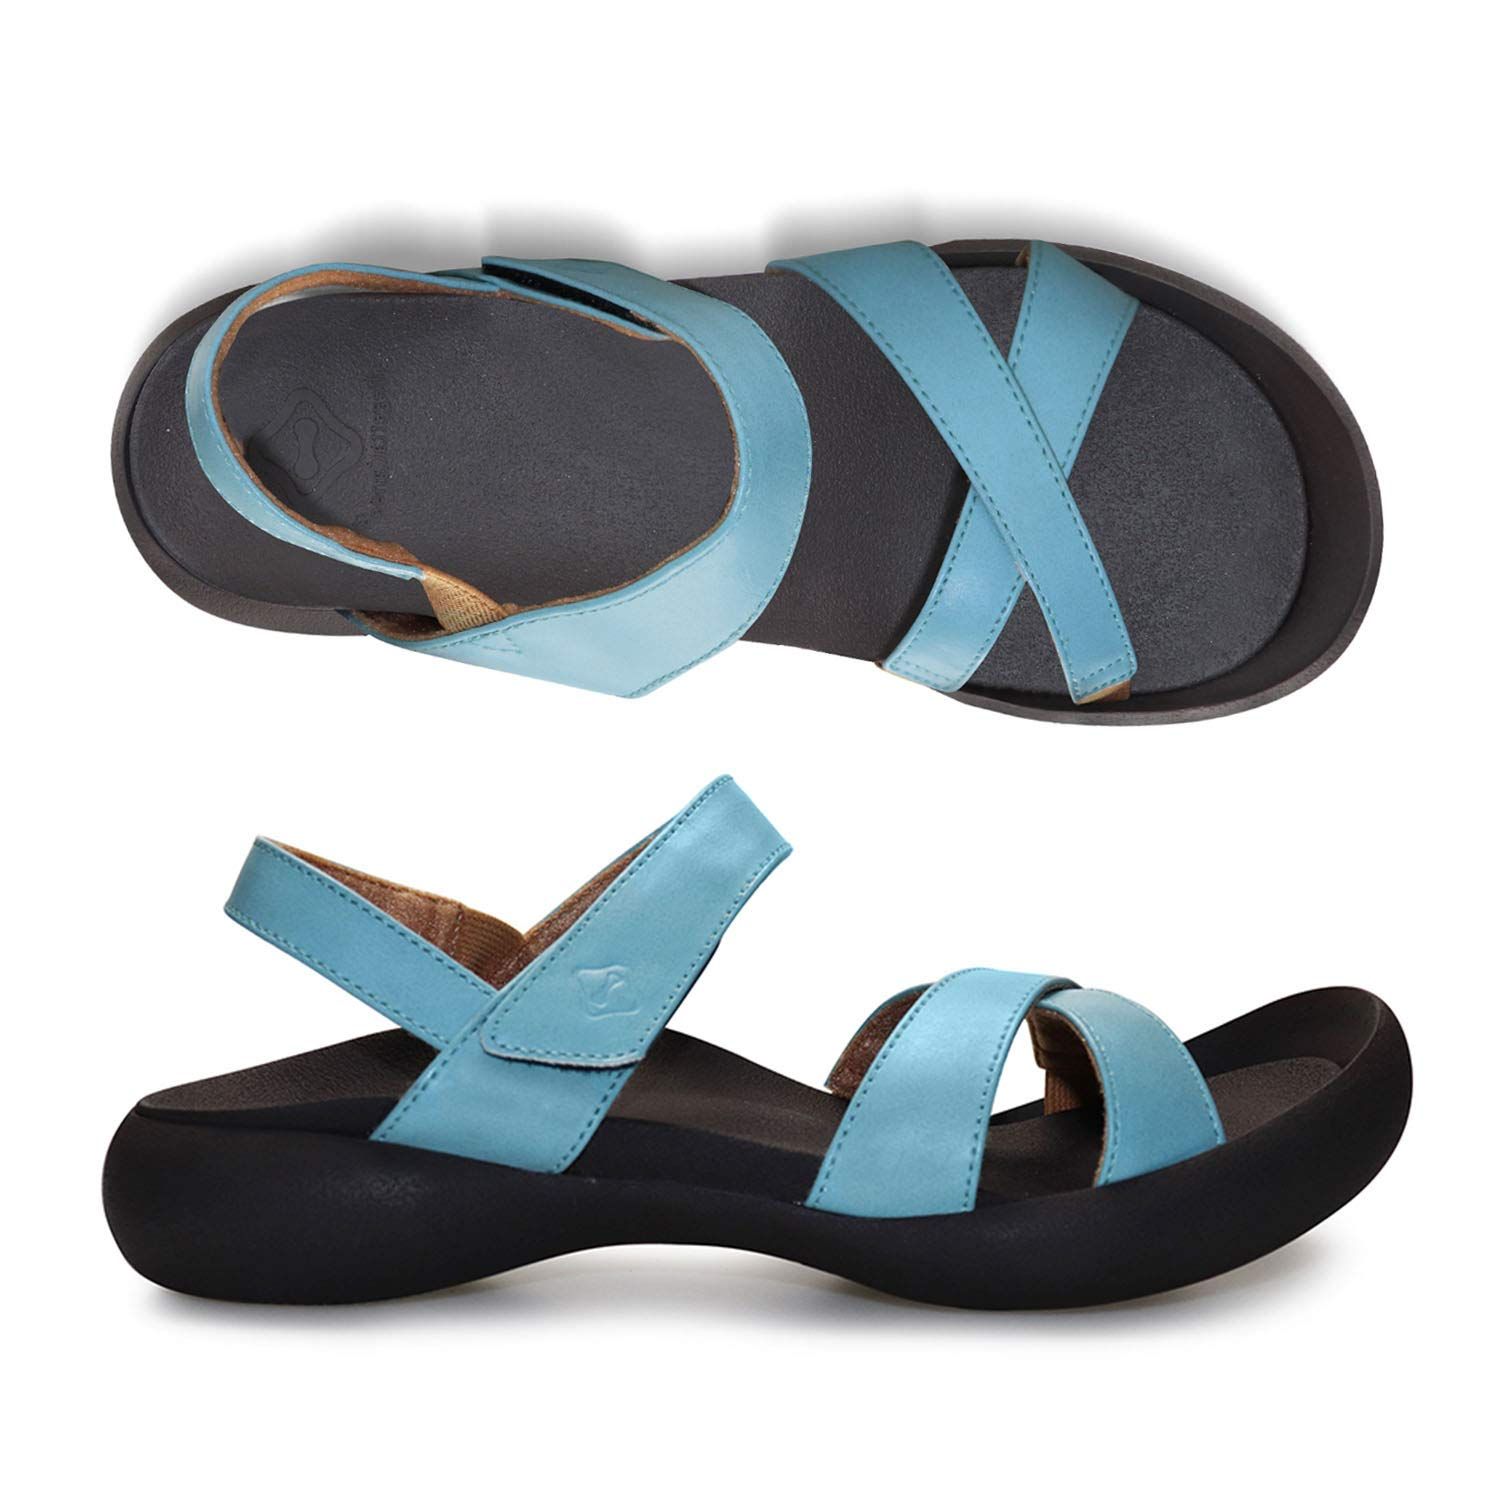 RegettaCanoe Sandals for Women - Field Hudie Ankle Strap Open-Toe Flat Walking Shoes for Women with Orthotic Design That Improves Posture and Corrects Step, Perfect for Everyday Wear